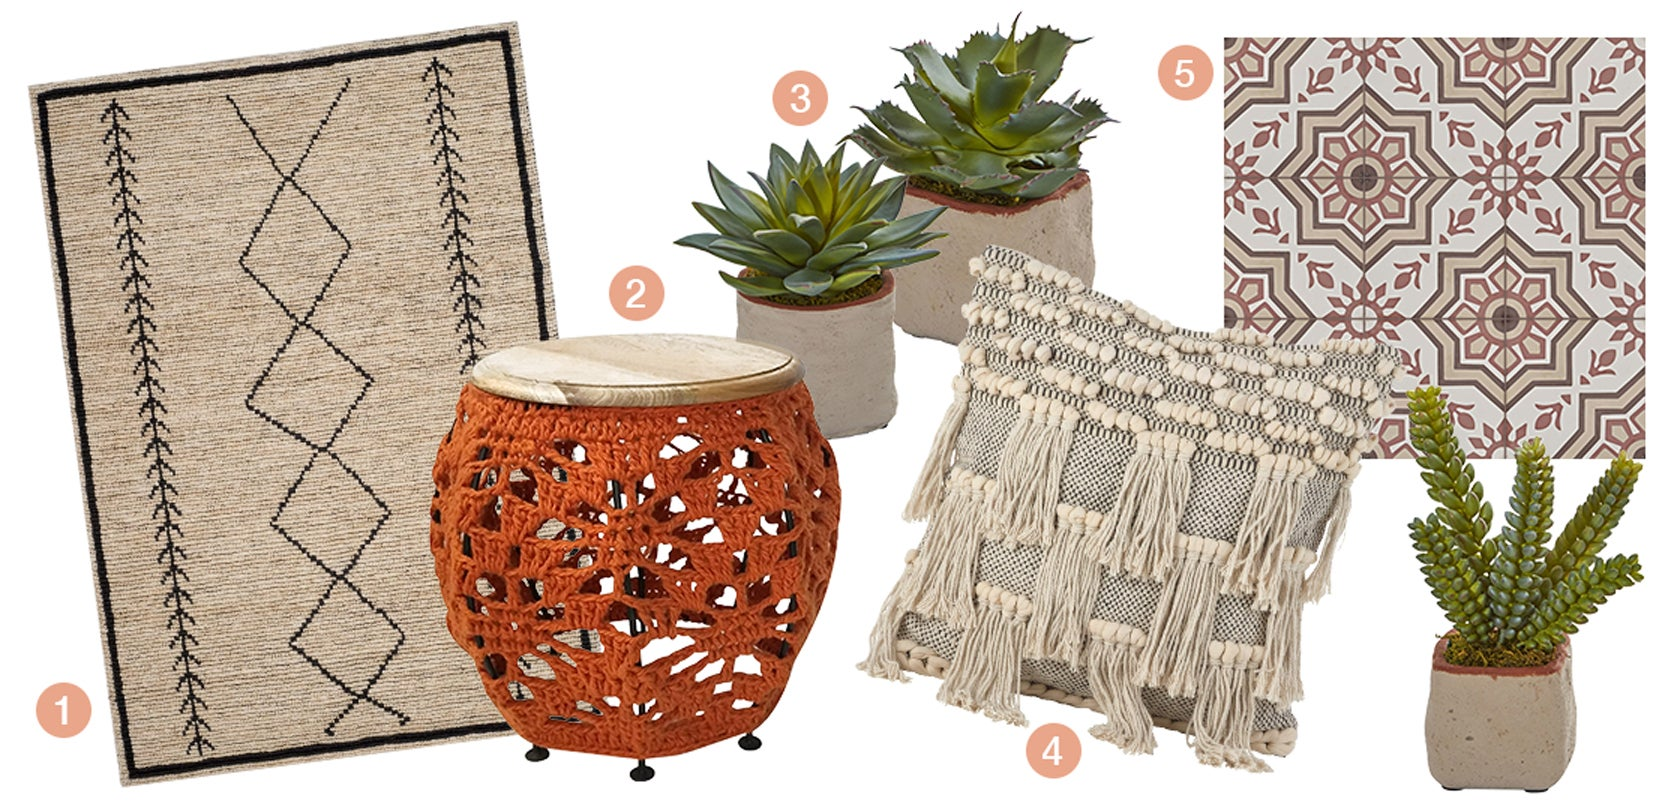 A collection of updated global products, a global tile, a boho throw pillow, a boho/southwest area rug, a collection of succulent plants, a macrome accent table